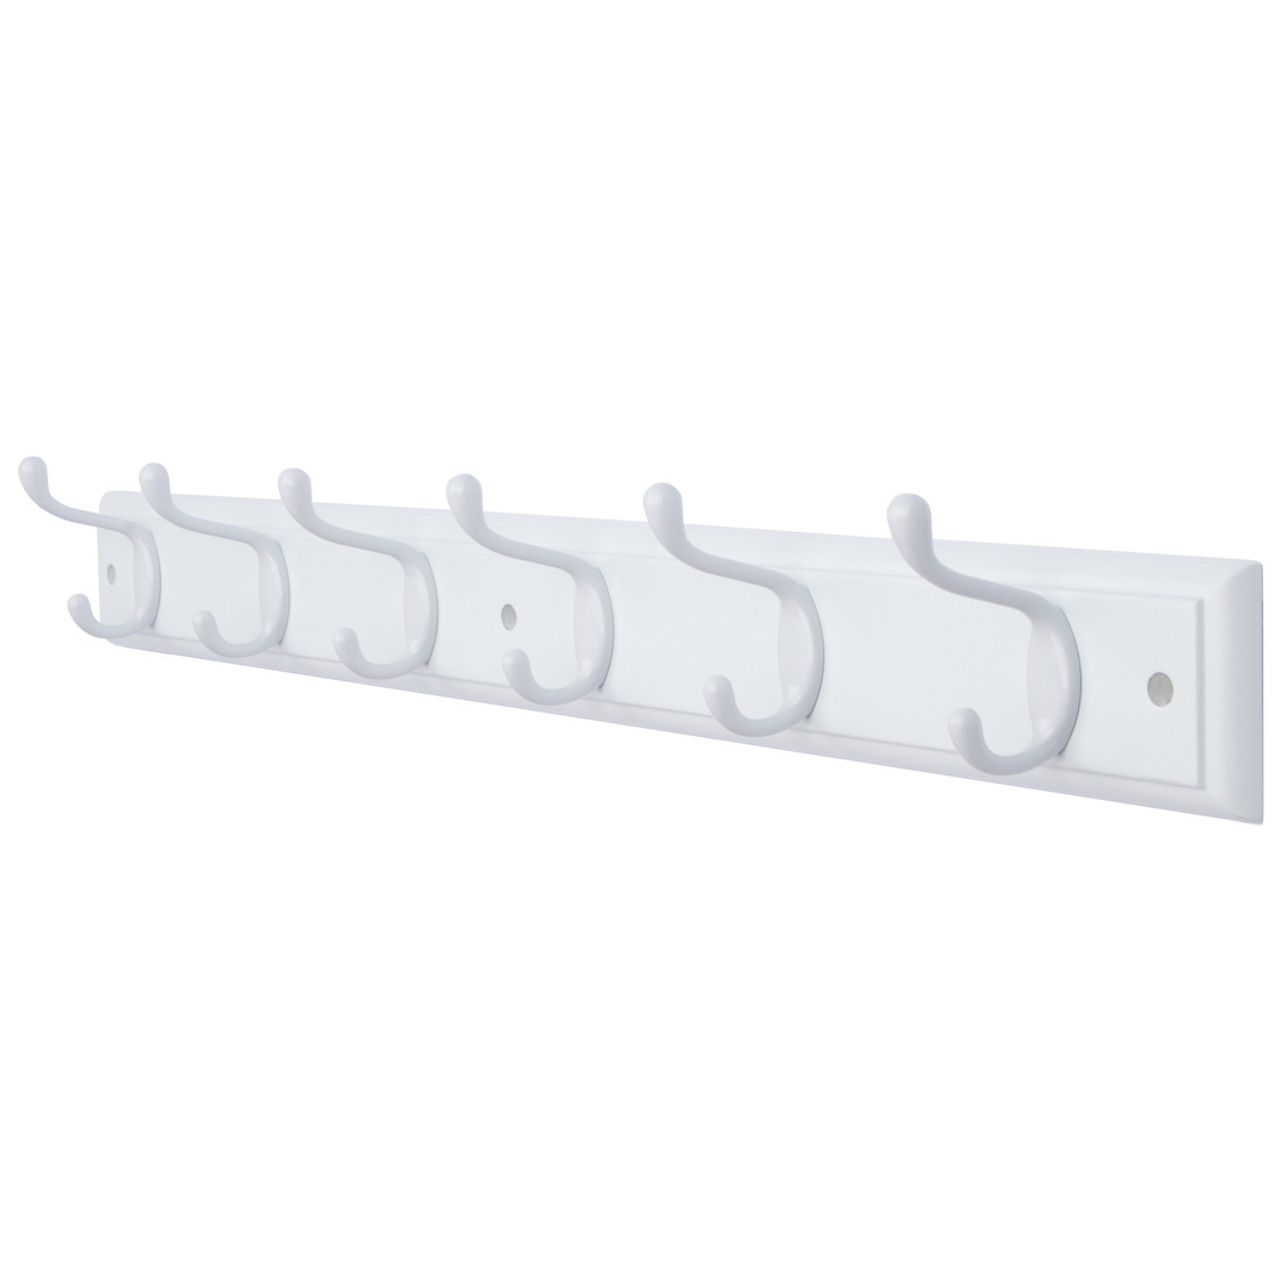 Available 4 and 6 Hooks in 4 Colors on White Wooden Board Wall Mounted Coat Hook Rack Hanger DOKEHOM 2 Set 4-Satin Nickel Hooks